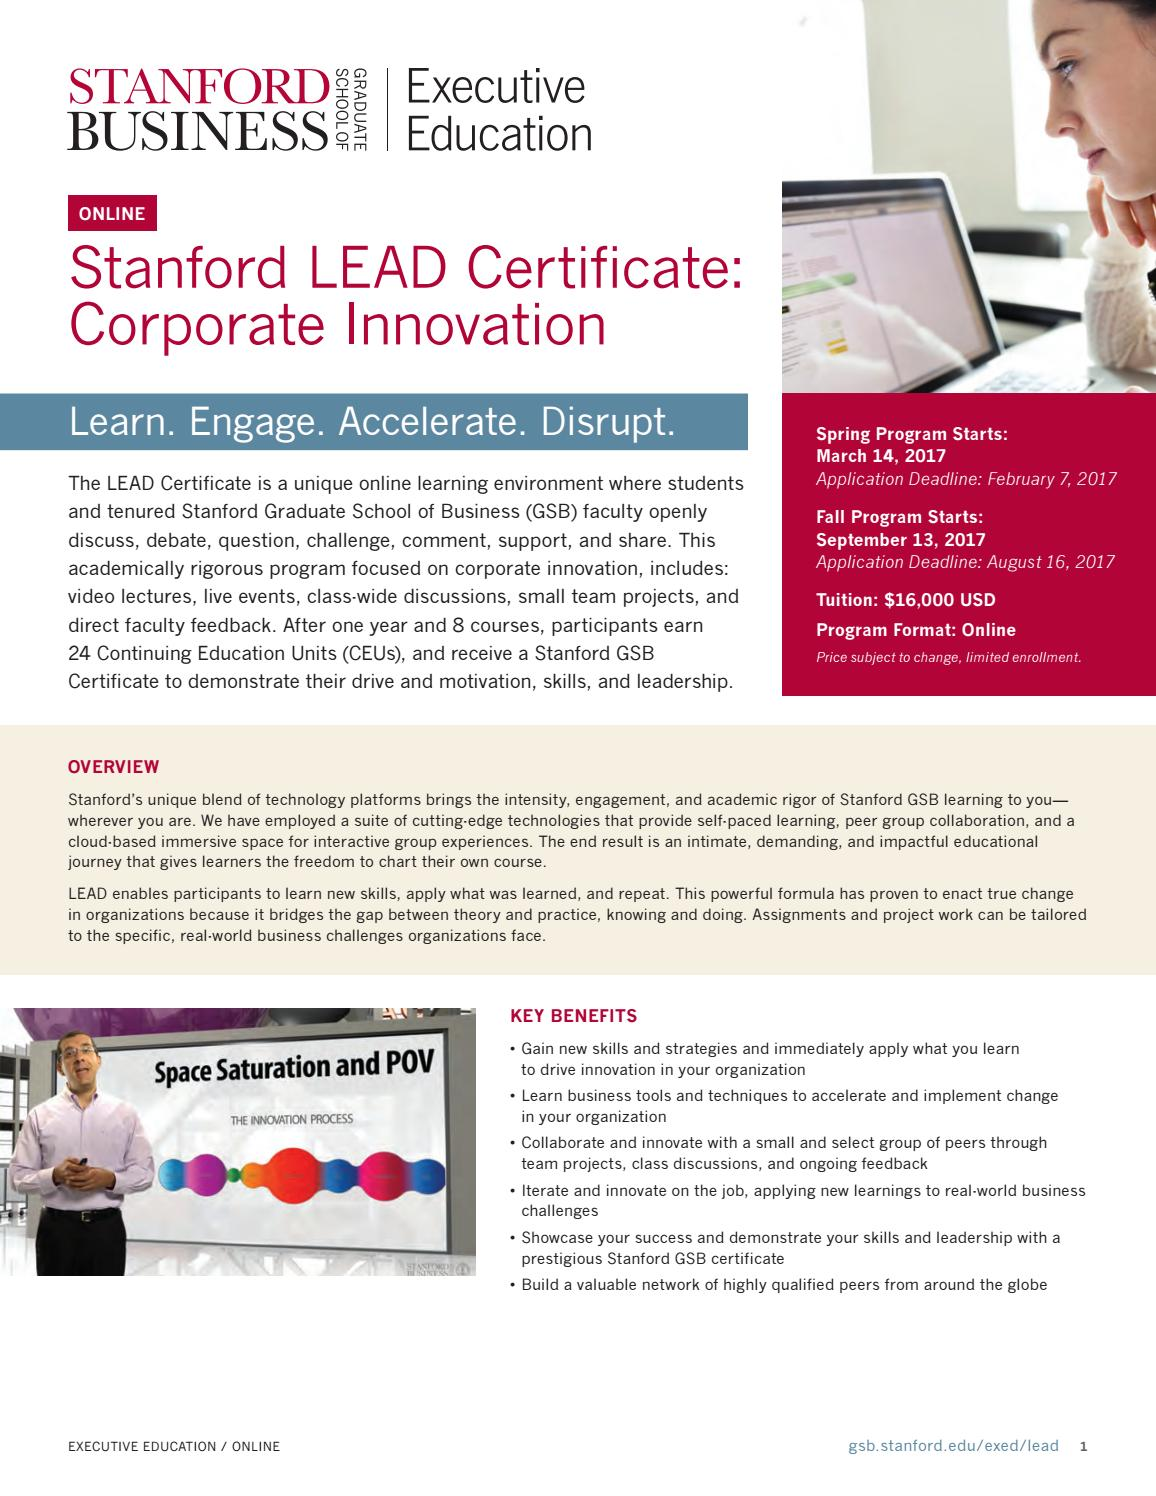 Stanford LEAD Certificate: Corporate Innovation by Stanford MSx